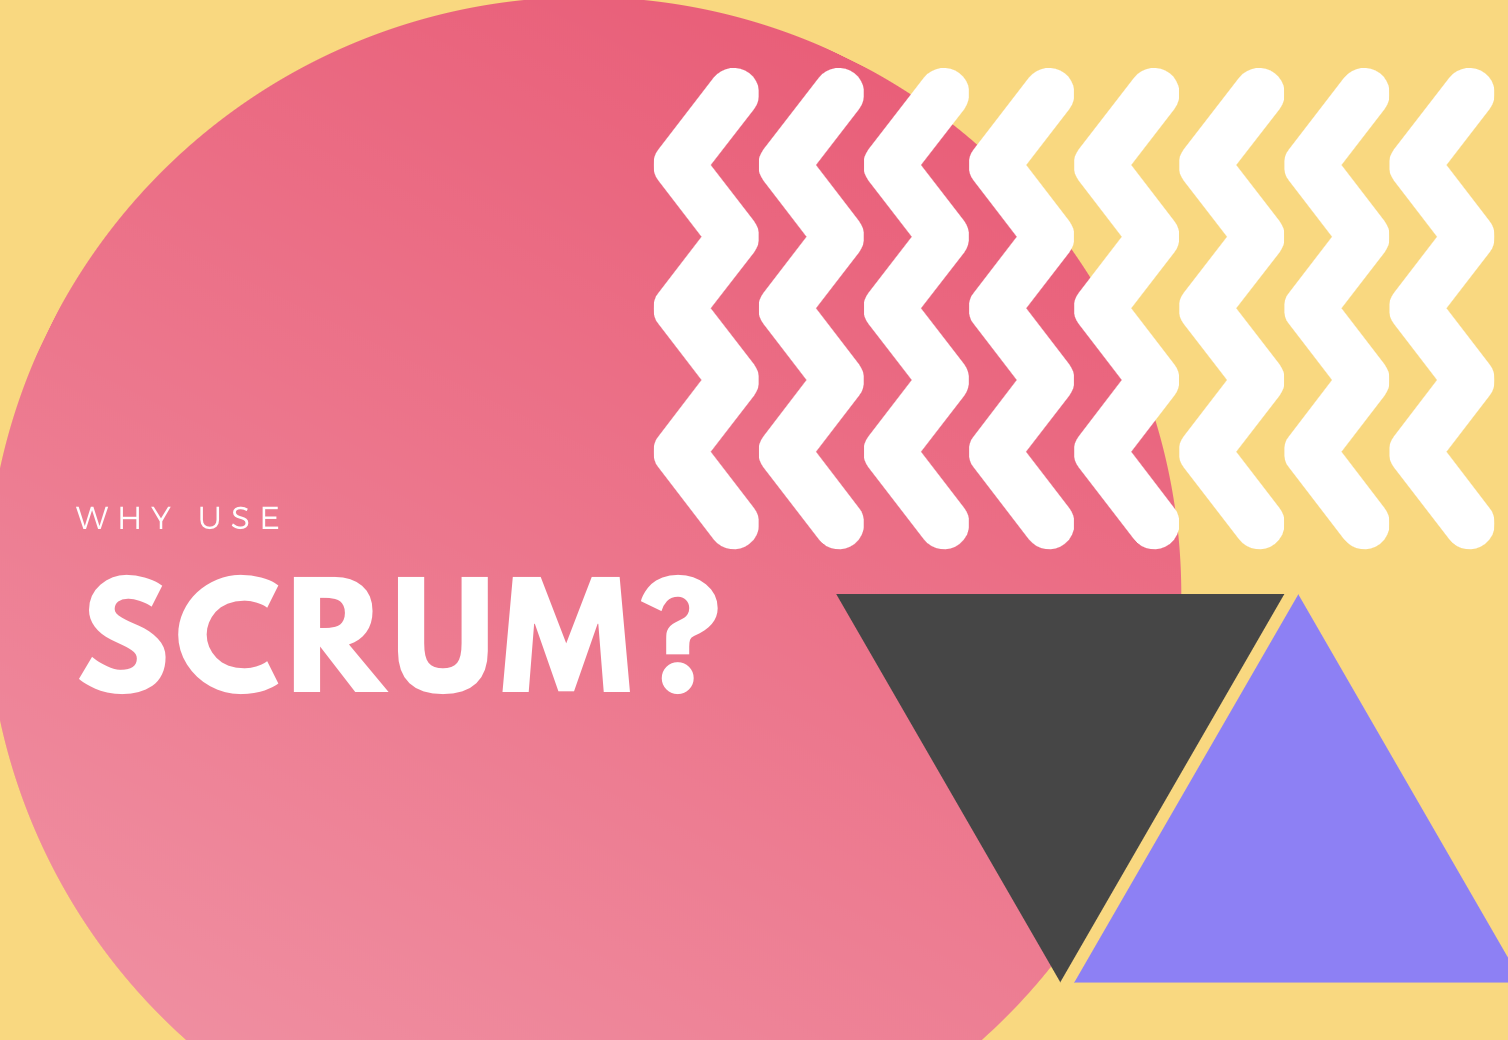 why use scrum graphic with shapes in pink, white, gray and purple